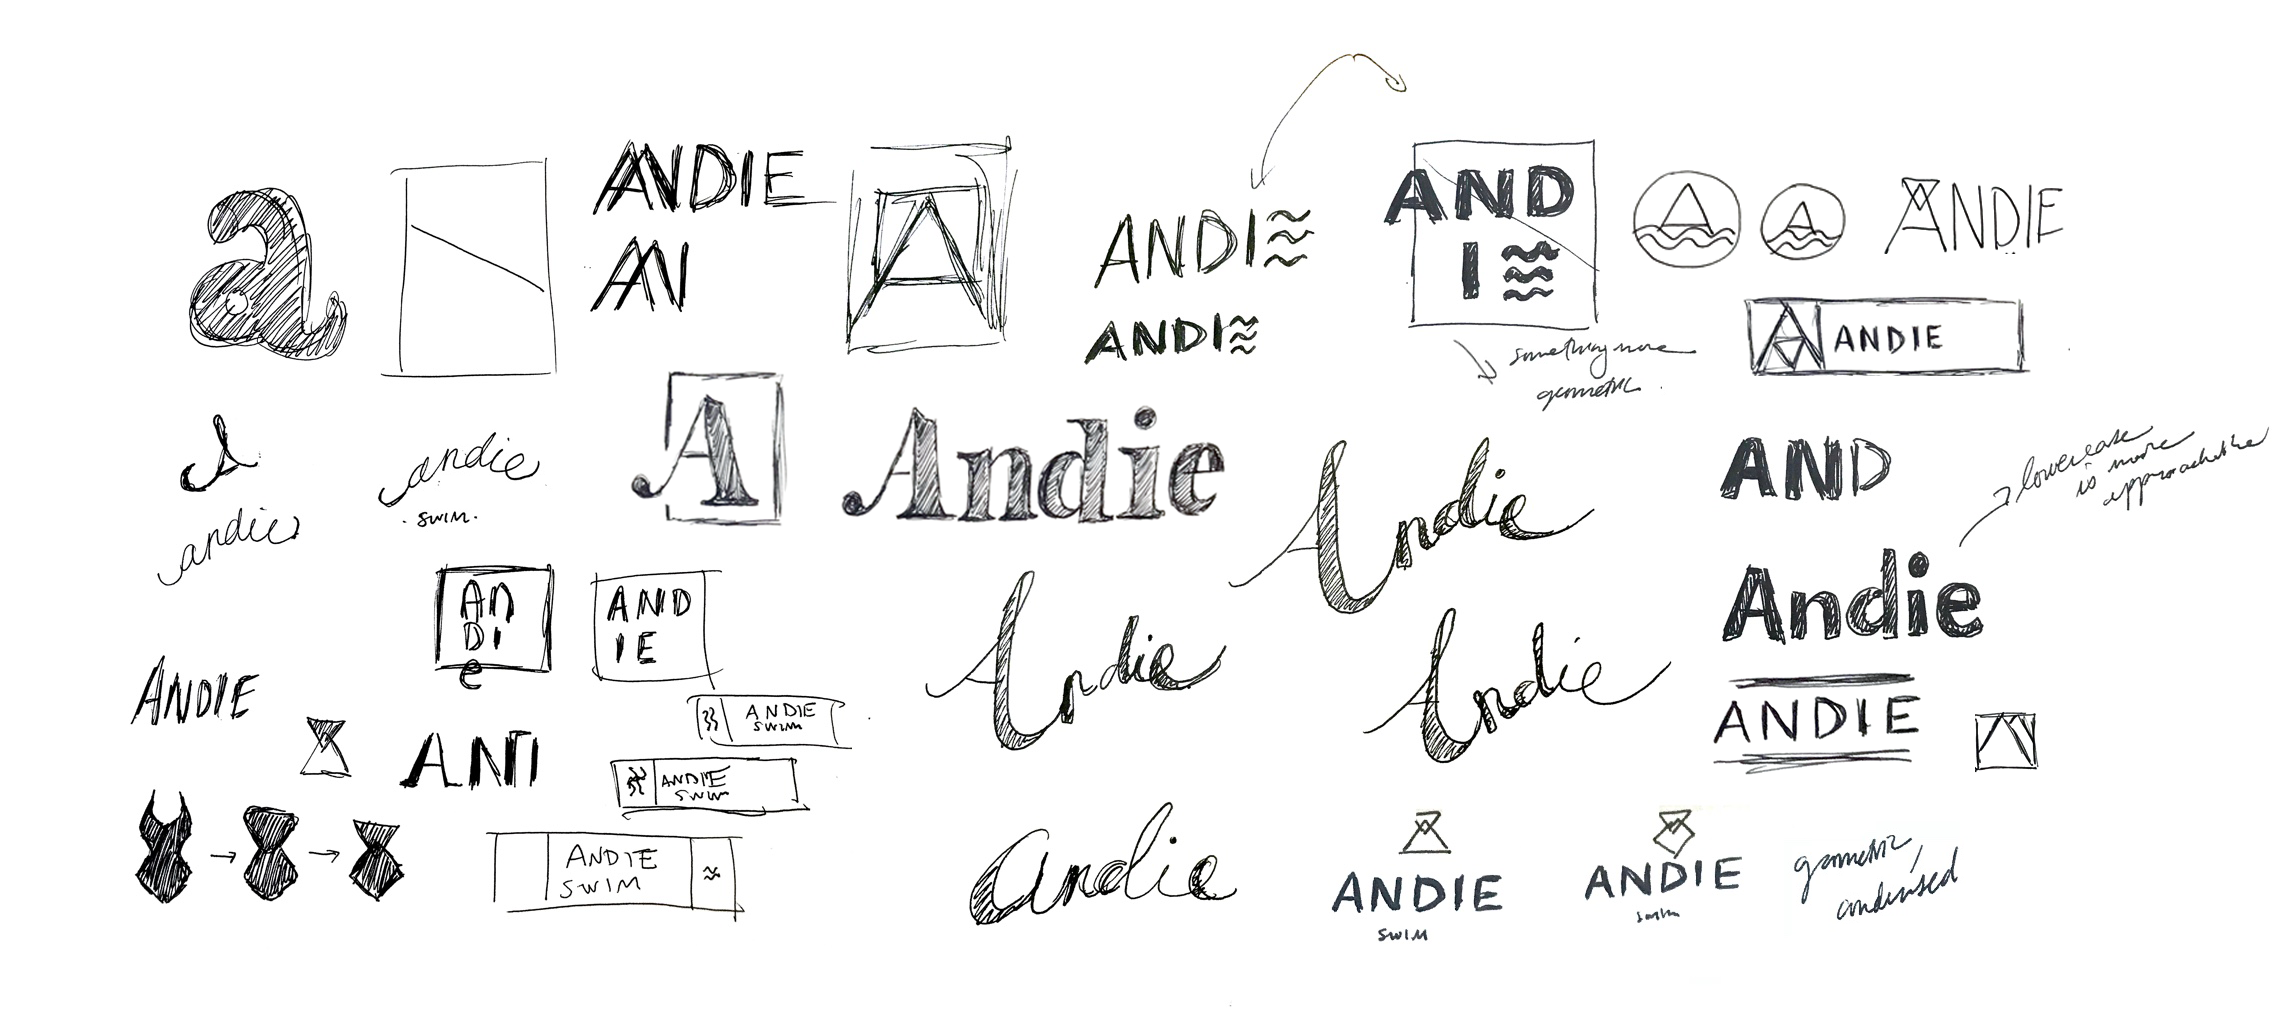 caley-ostrander-andie-sketches-new.png